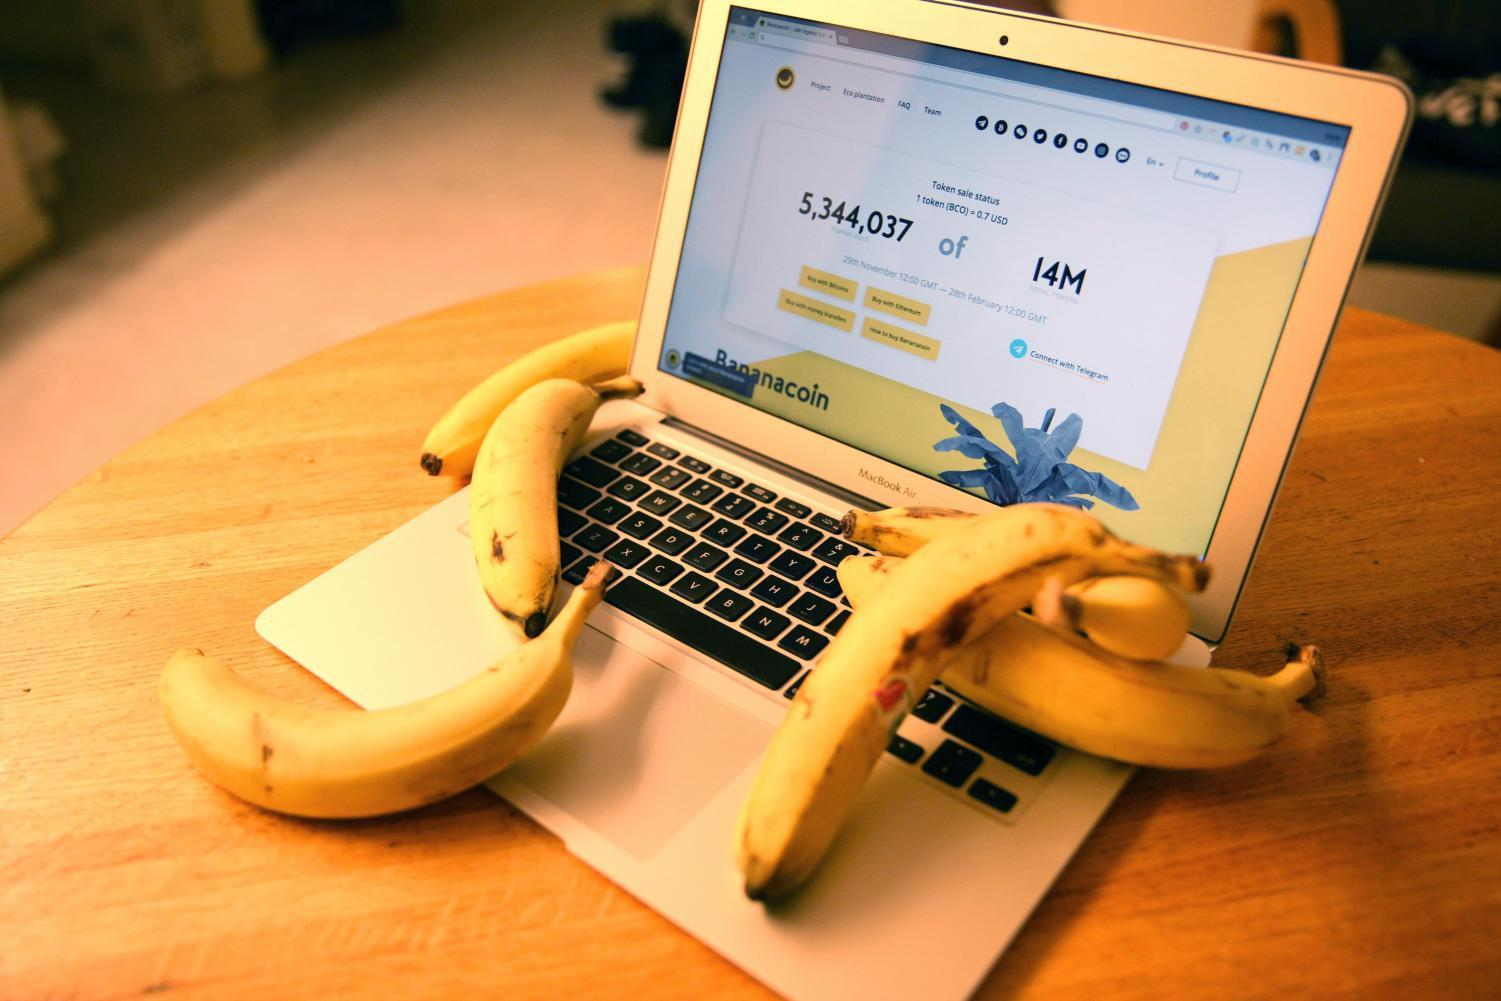 A laptop displaying the Bananacoin homepage.